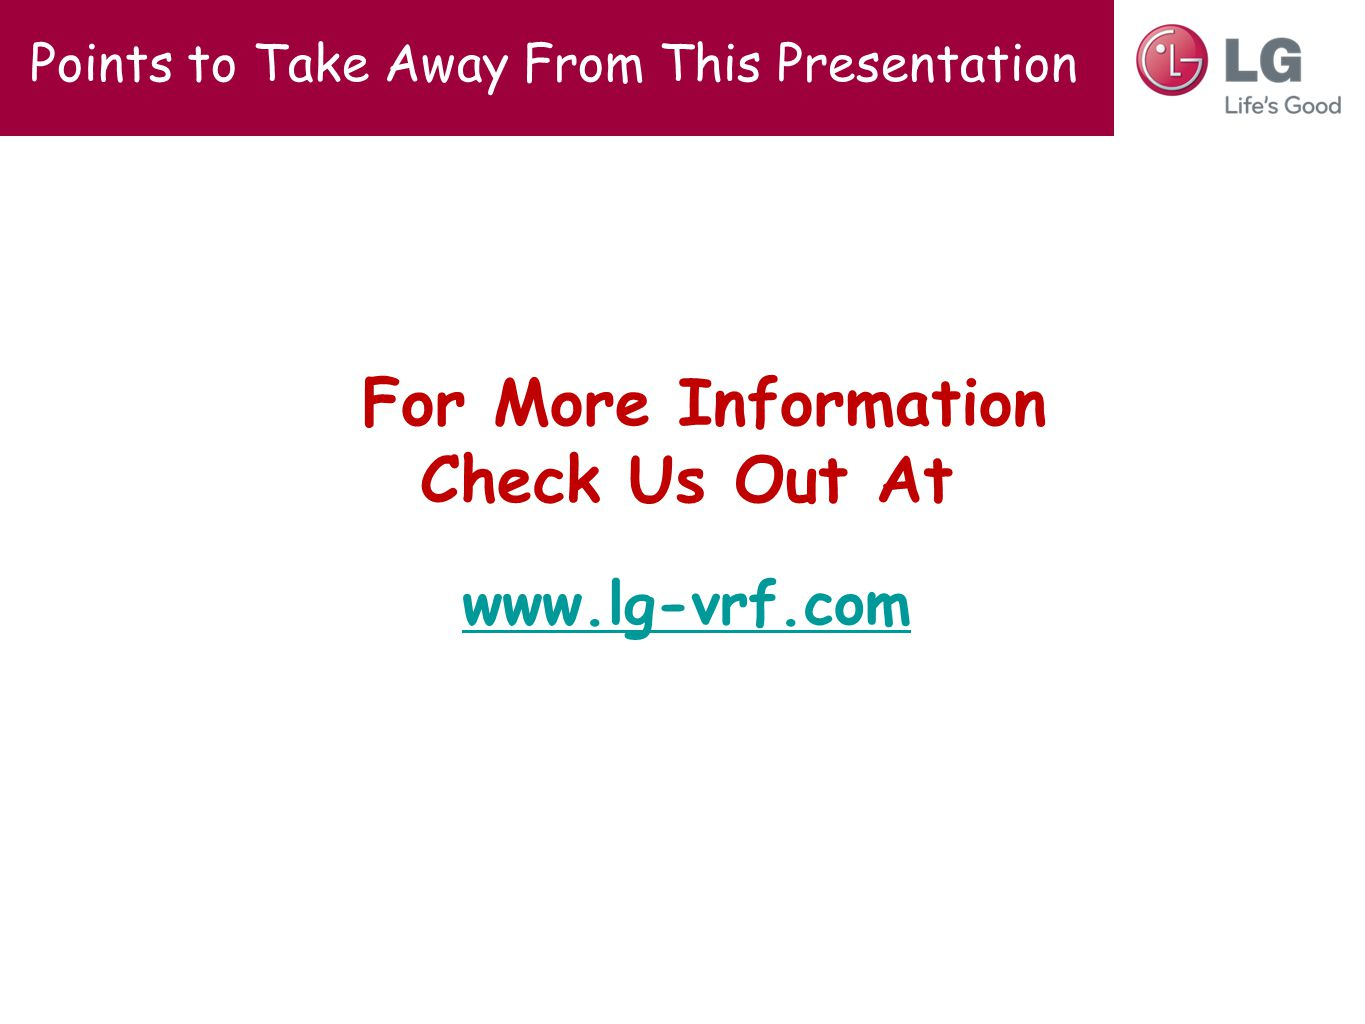 Points to Take Away From This Presentation For More Information Check Us Out At www.lg-vrf.com